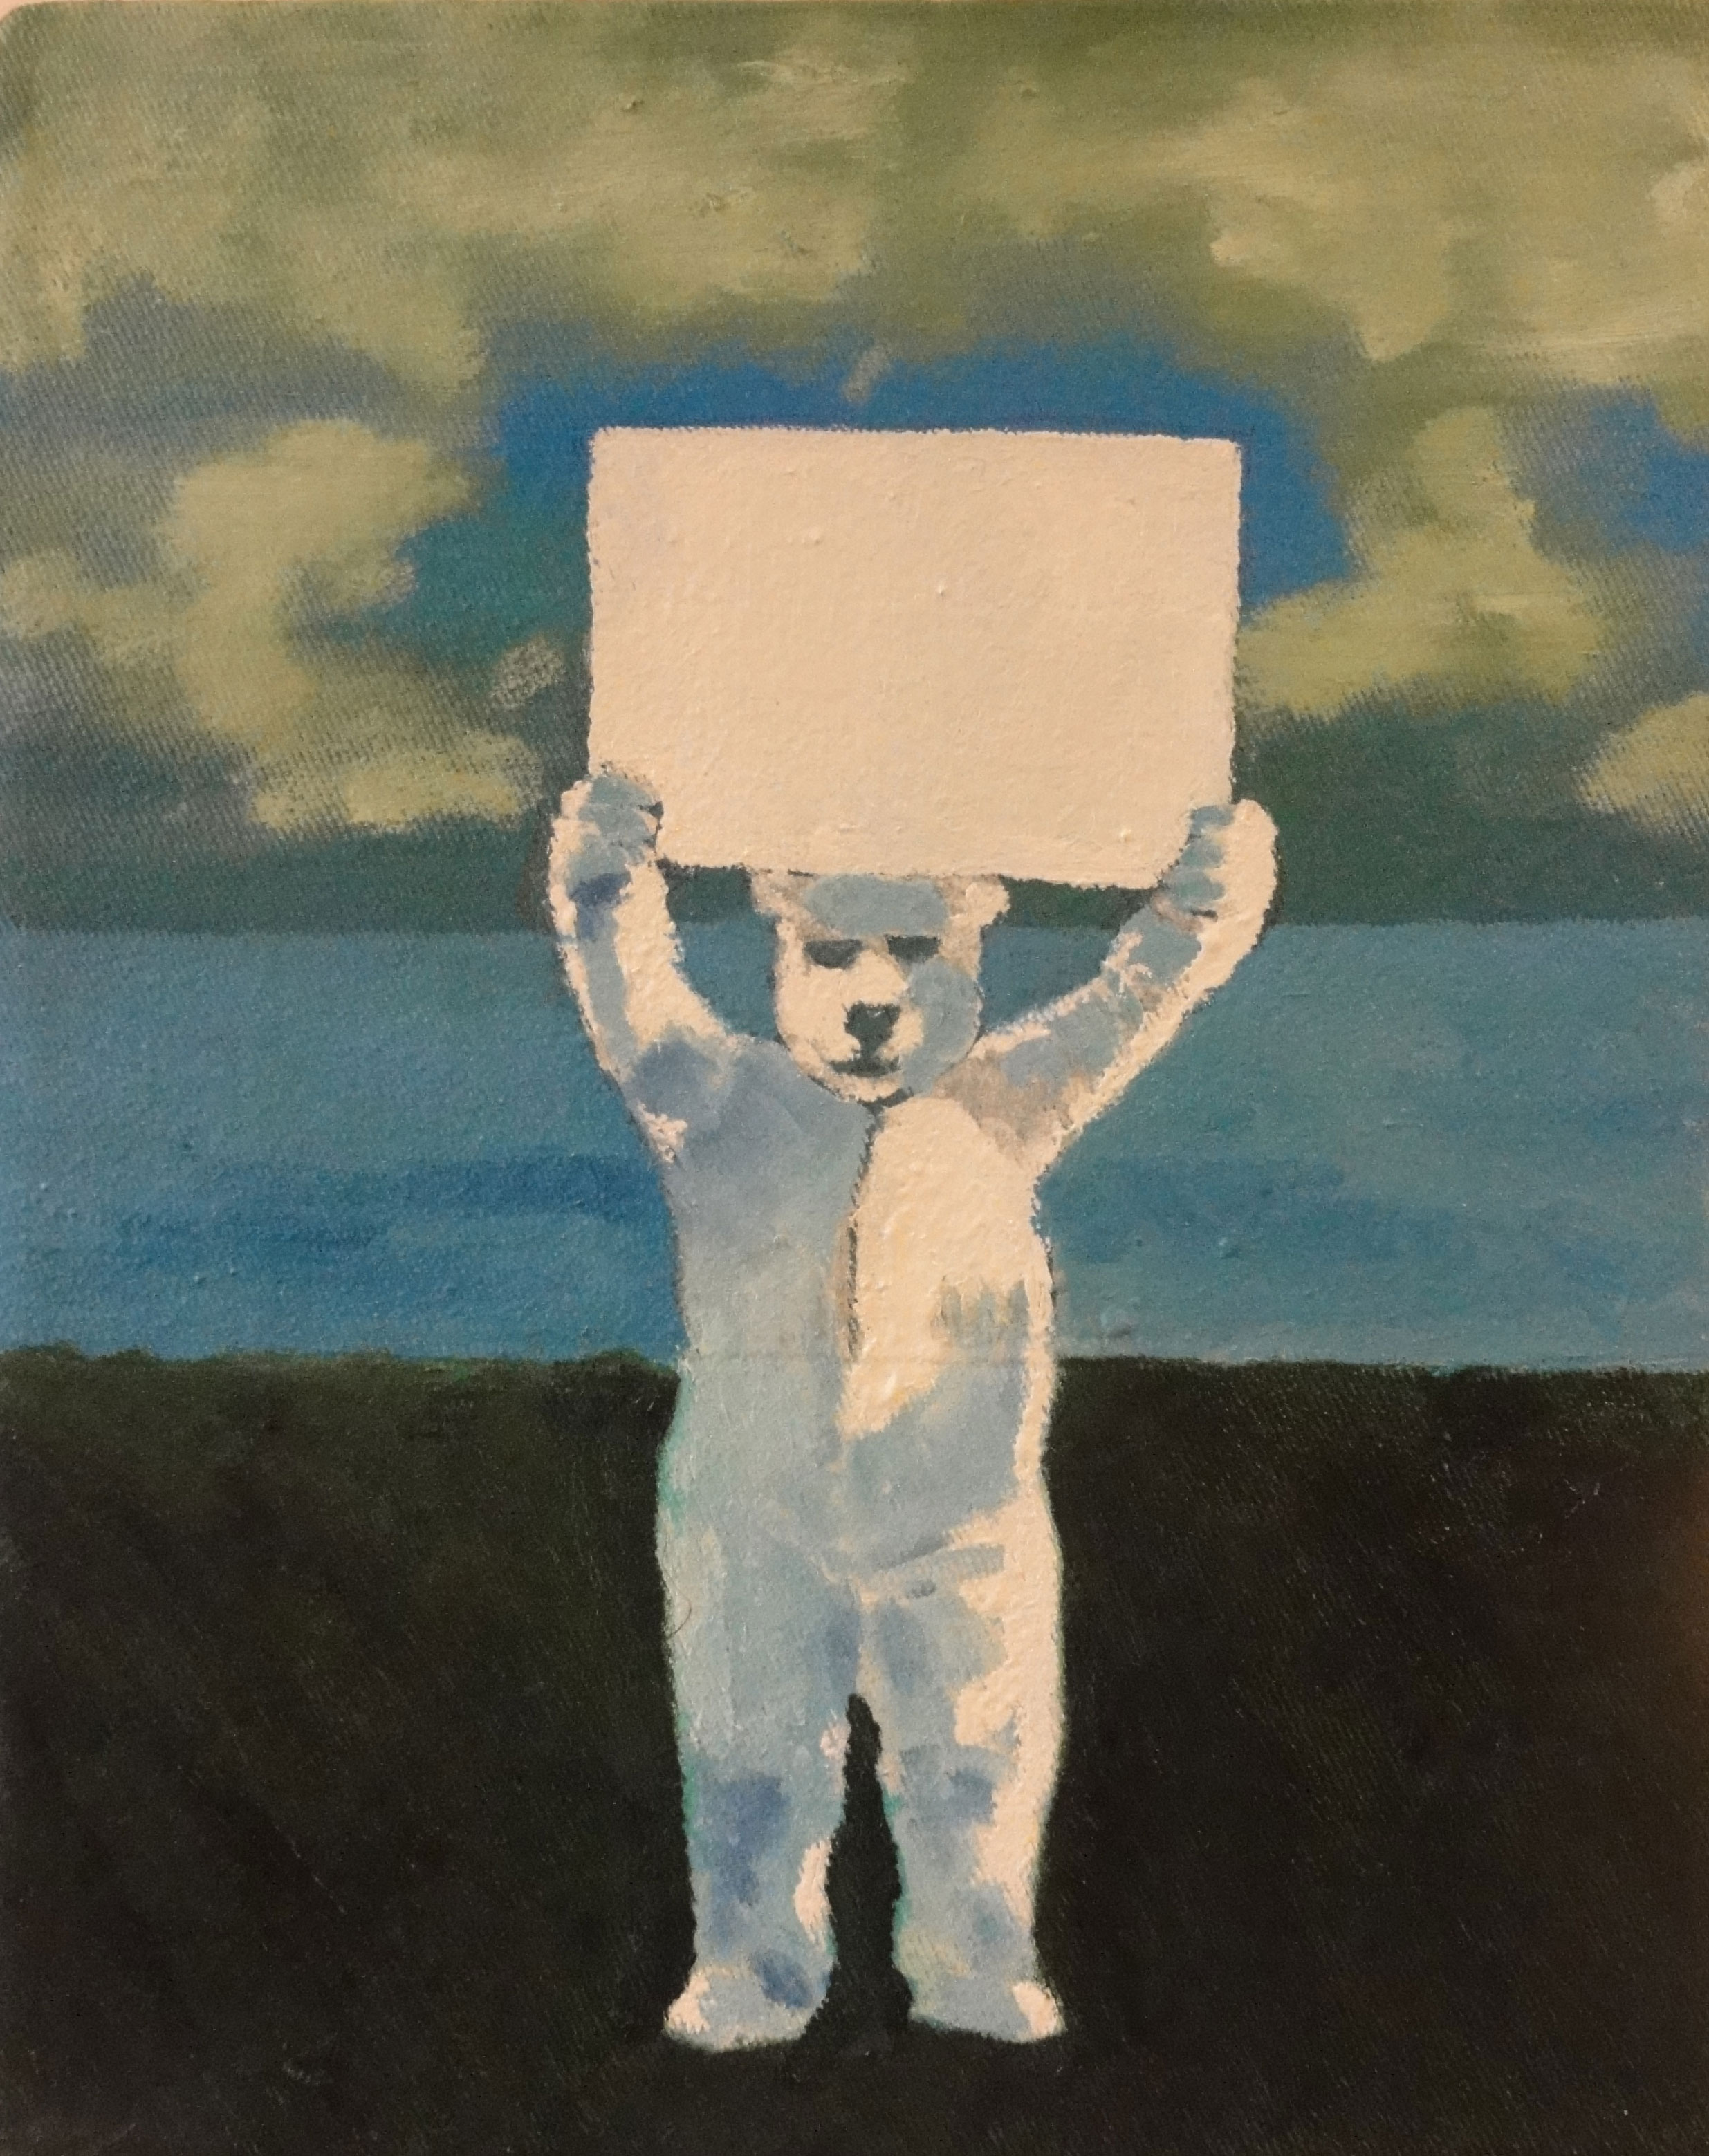 Icebear protester (in private collection)